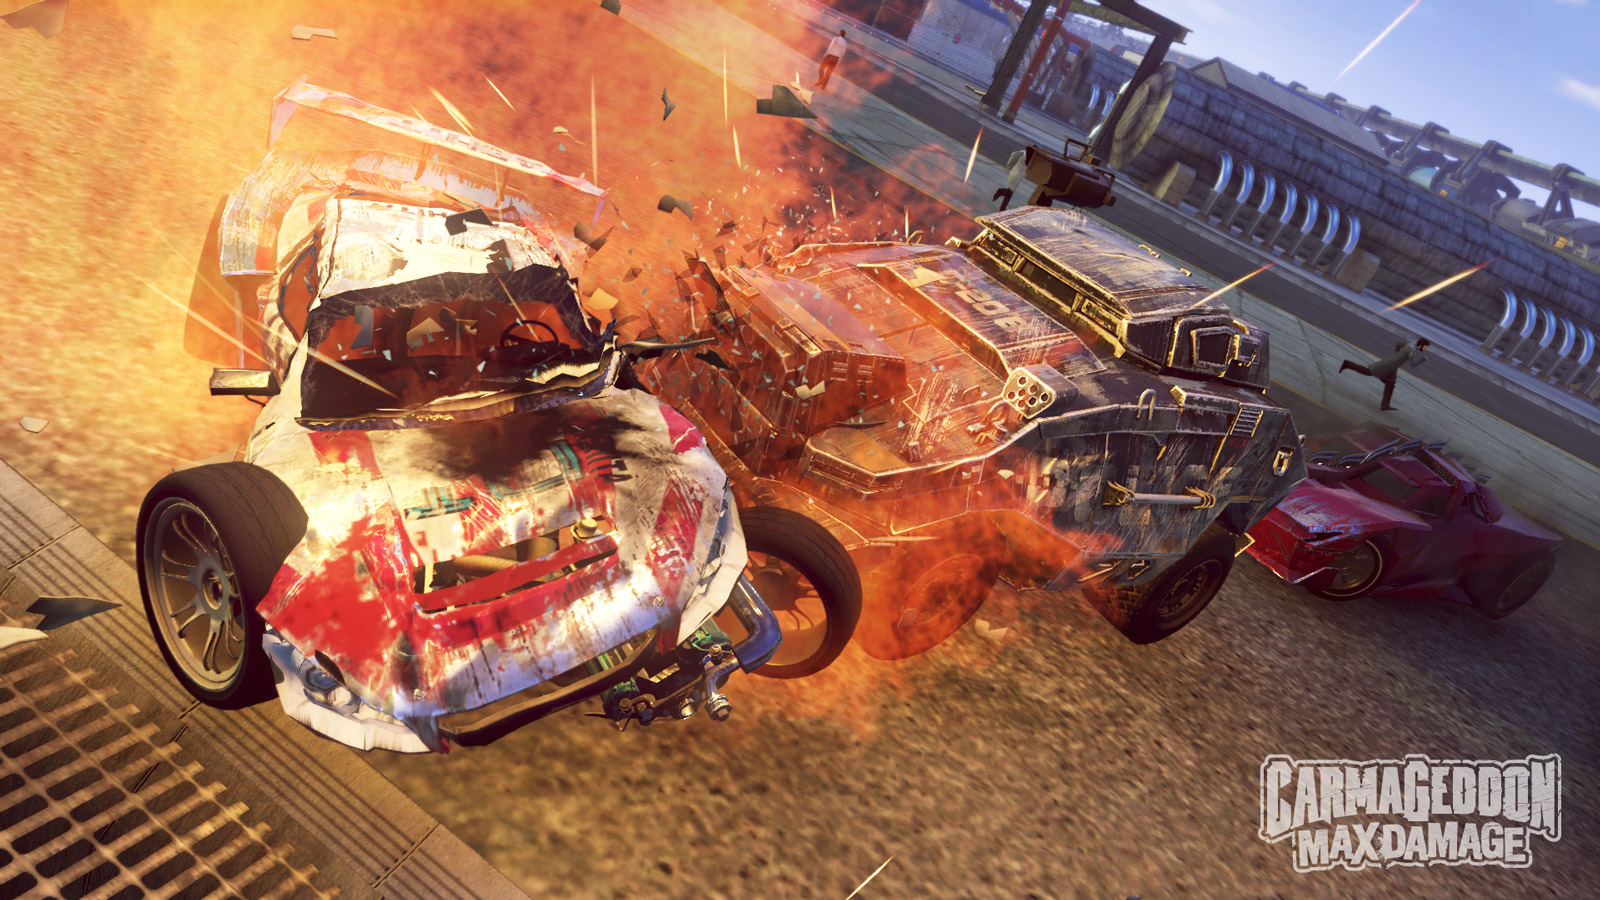 Free Carmageddon: Max Damage Wallpaper in 1600x900